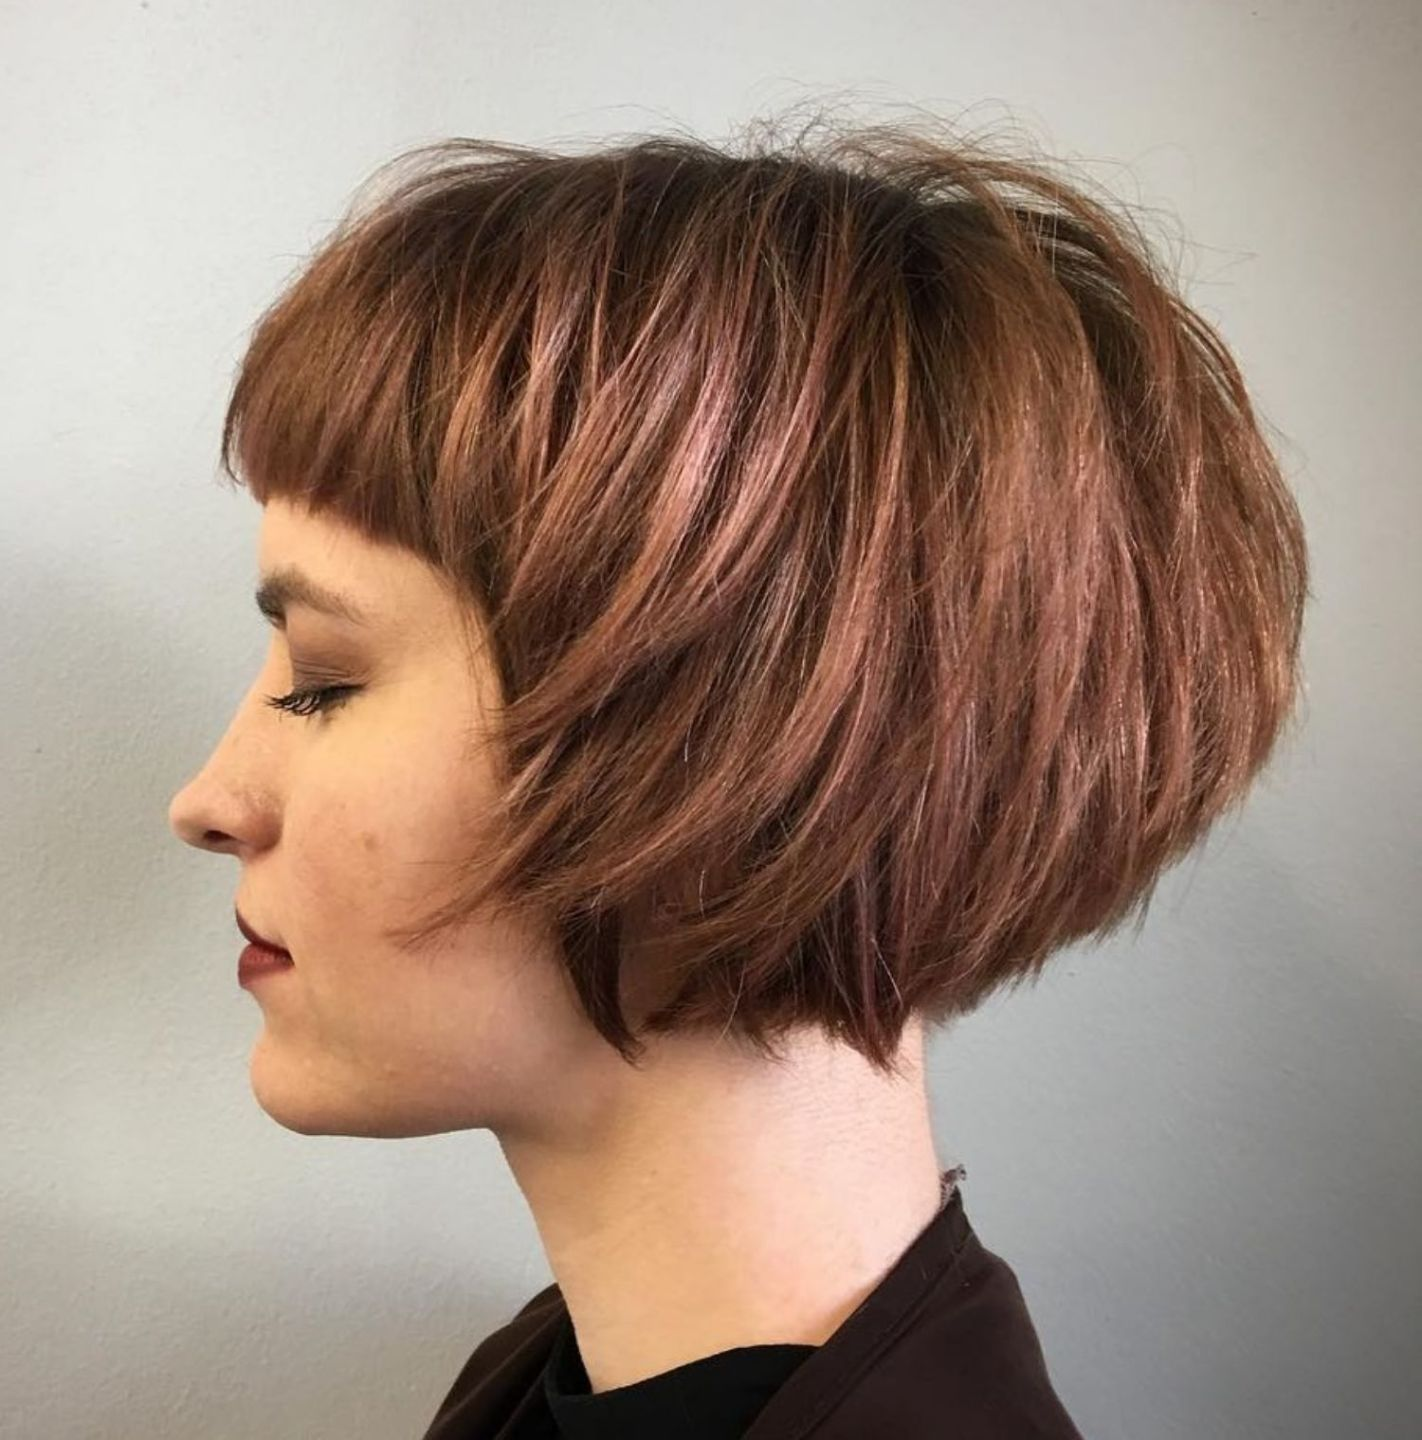 Short Layered Rosewood Bob Thick Hair Styles Short Bob Haircuts Bob Hairstyles